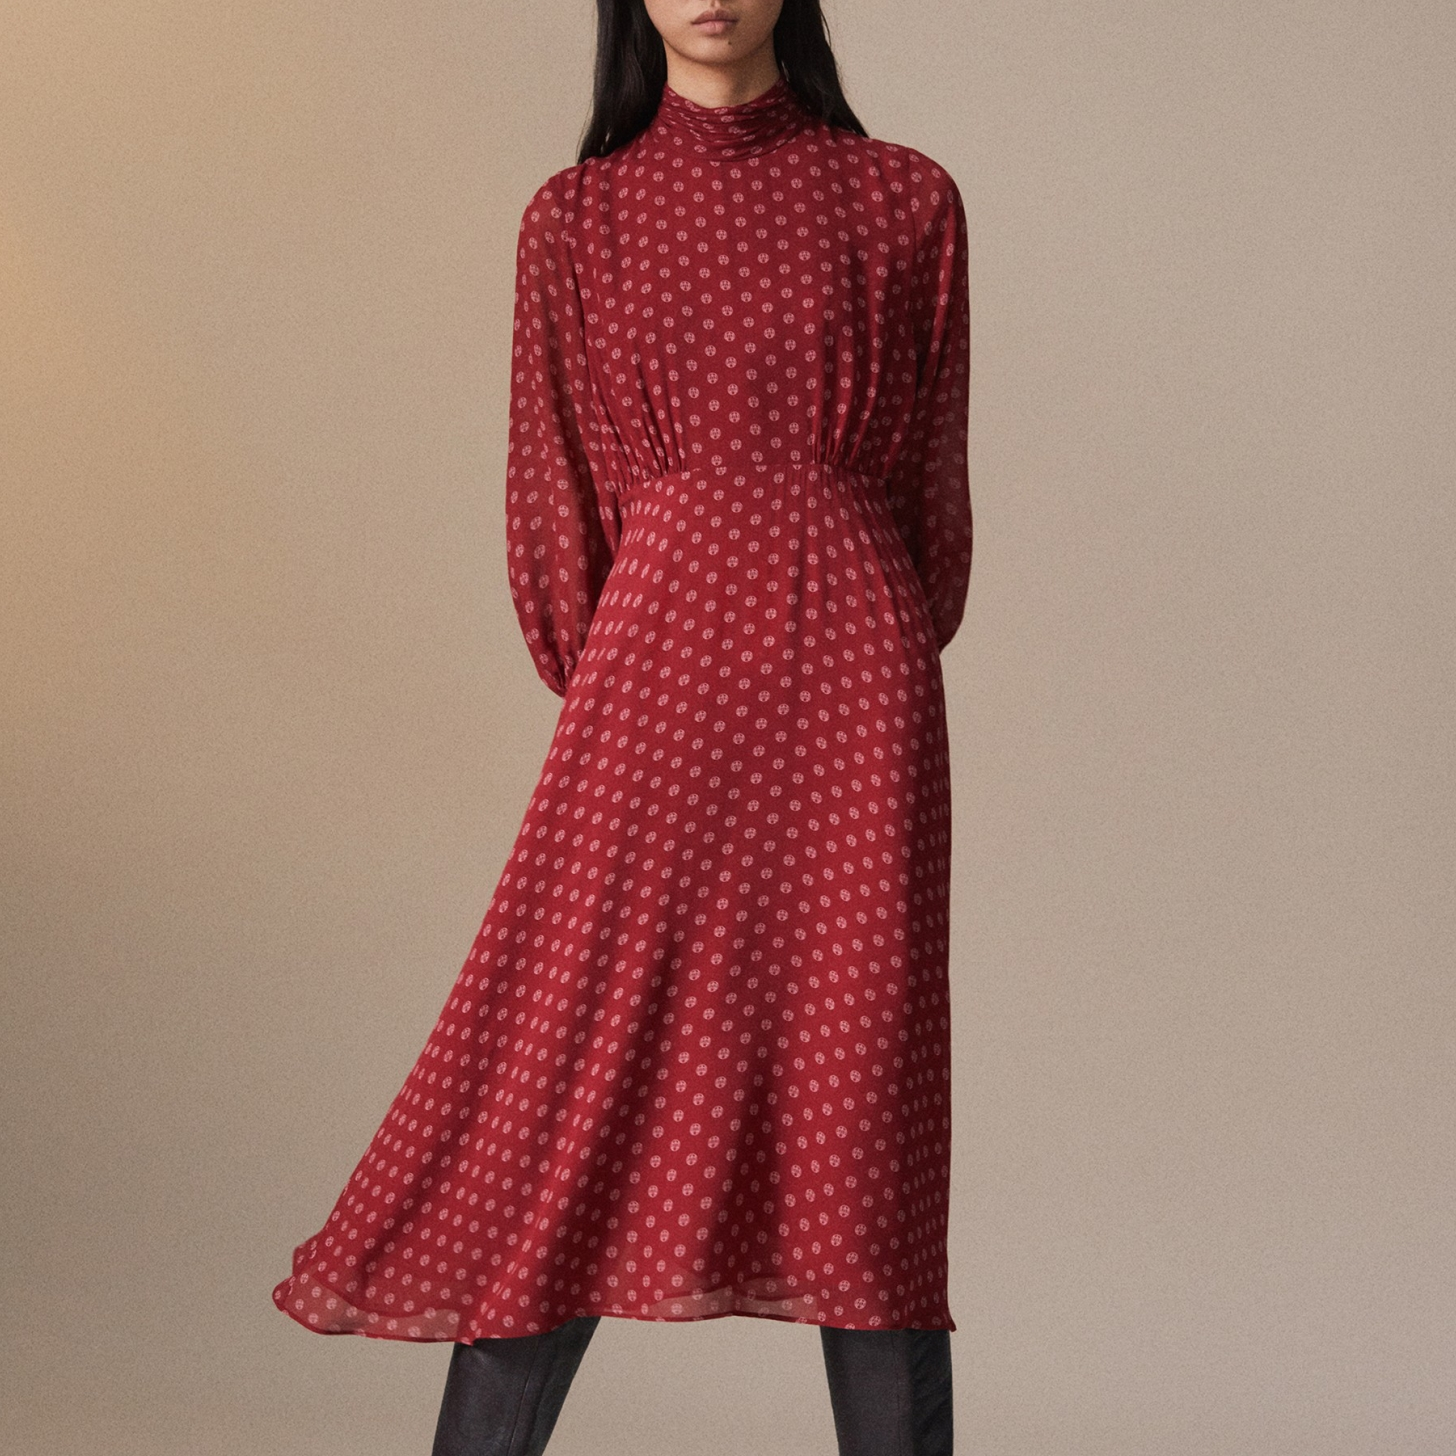 2019 Korean Commute Print Winter Dress Stand Collar Empire Draped A-Line Mid-Calf Long Sleeve Elegant Red Party Dress Women